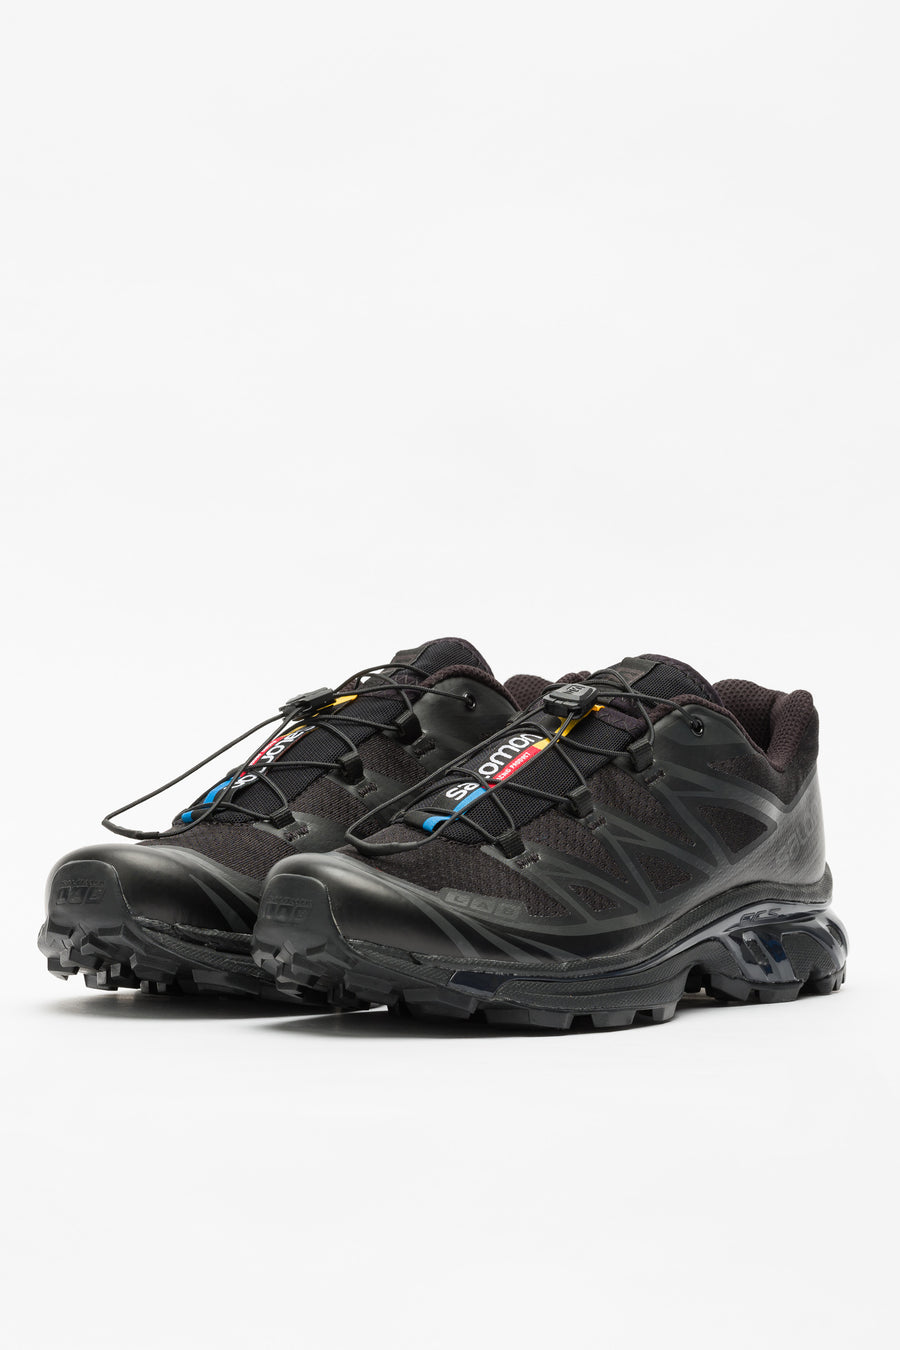 SALOMON S/LAB XT-6 Softground LT ADV in Black/Black - Notre